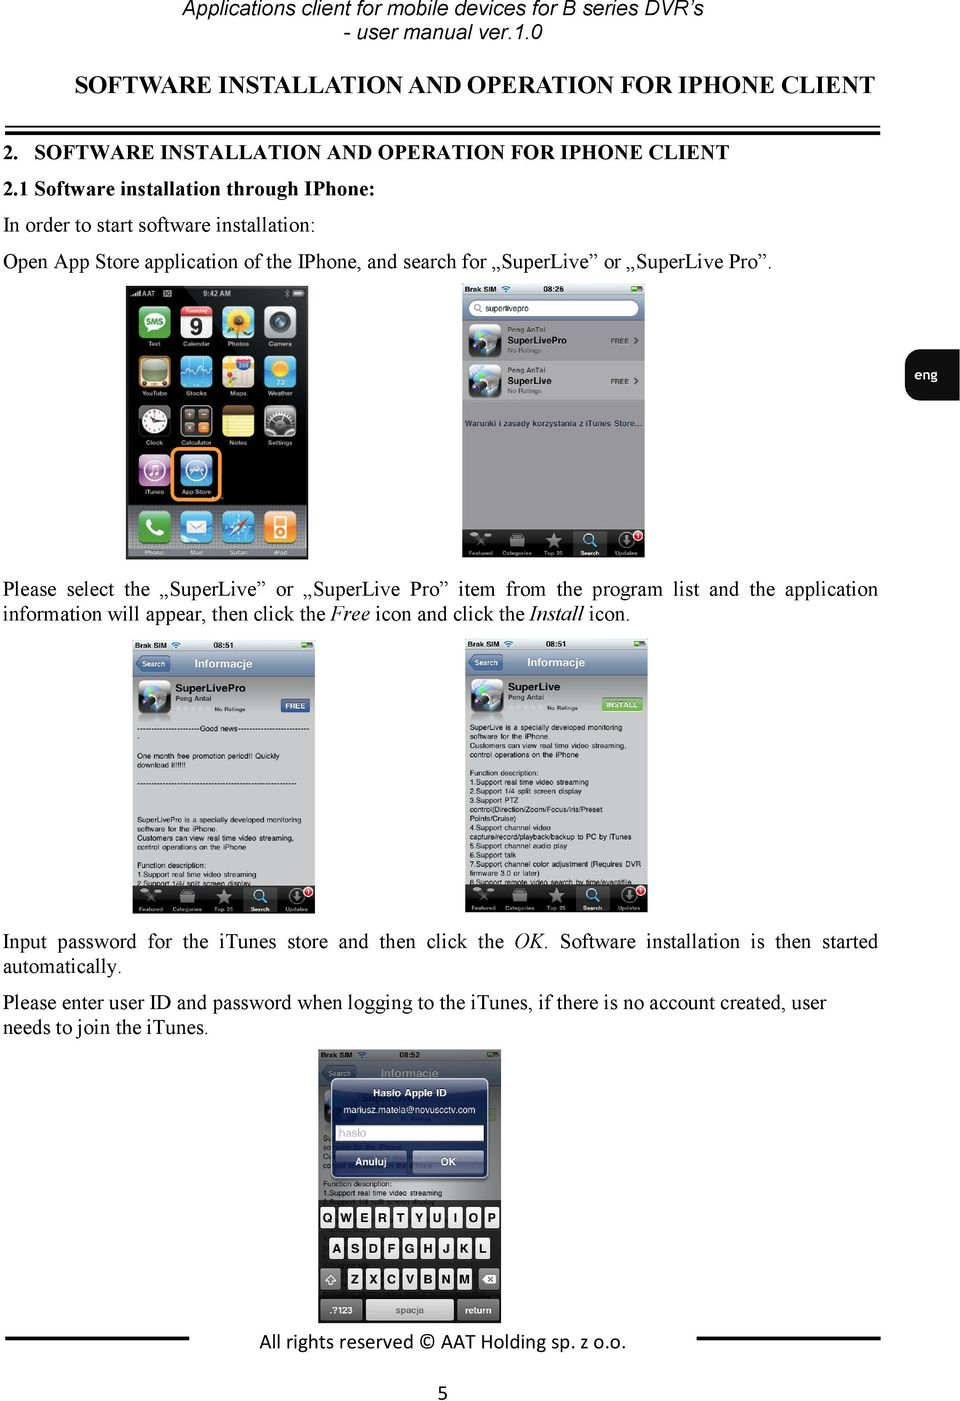 1 Software installation through IPhone: In order to start software installation: Open App Store application of the IPhone, and search for SuperLive or SuperLive Pro.